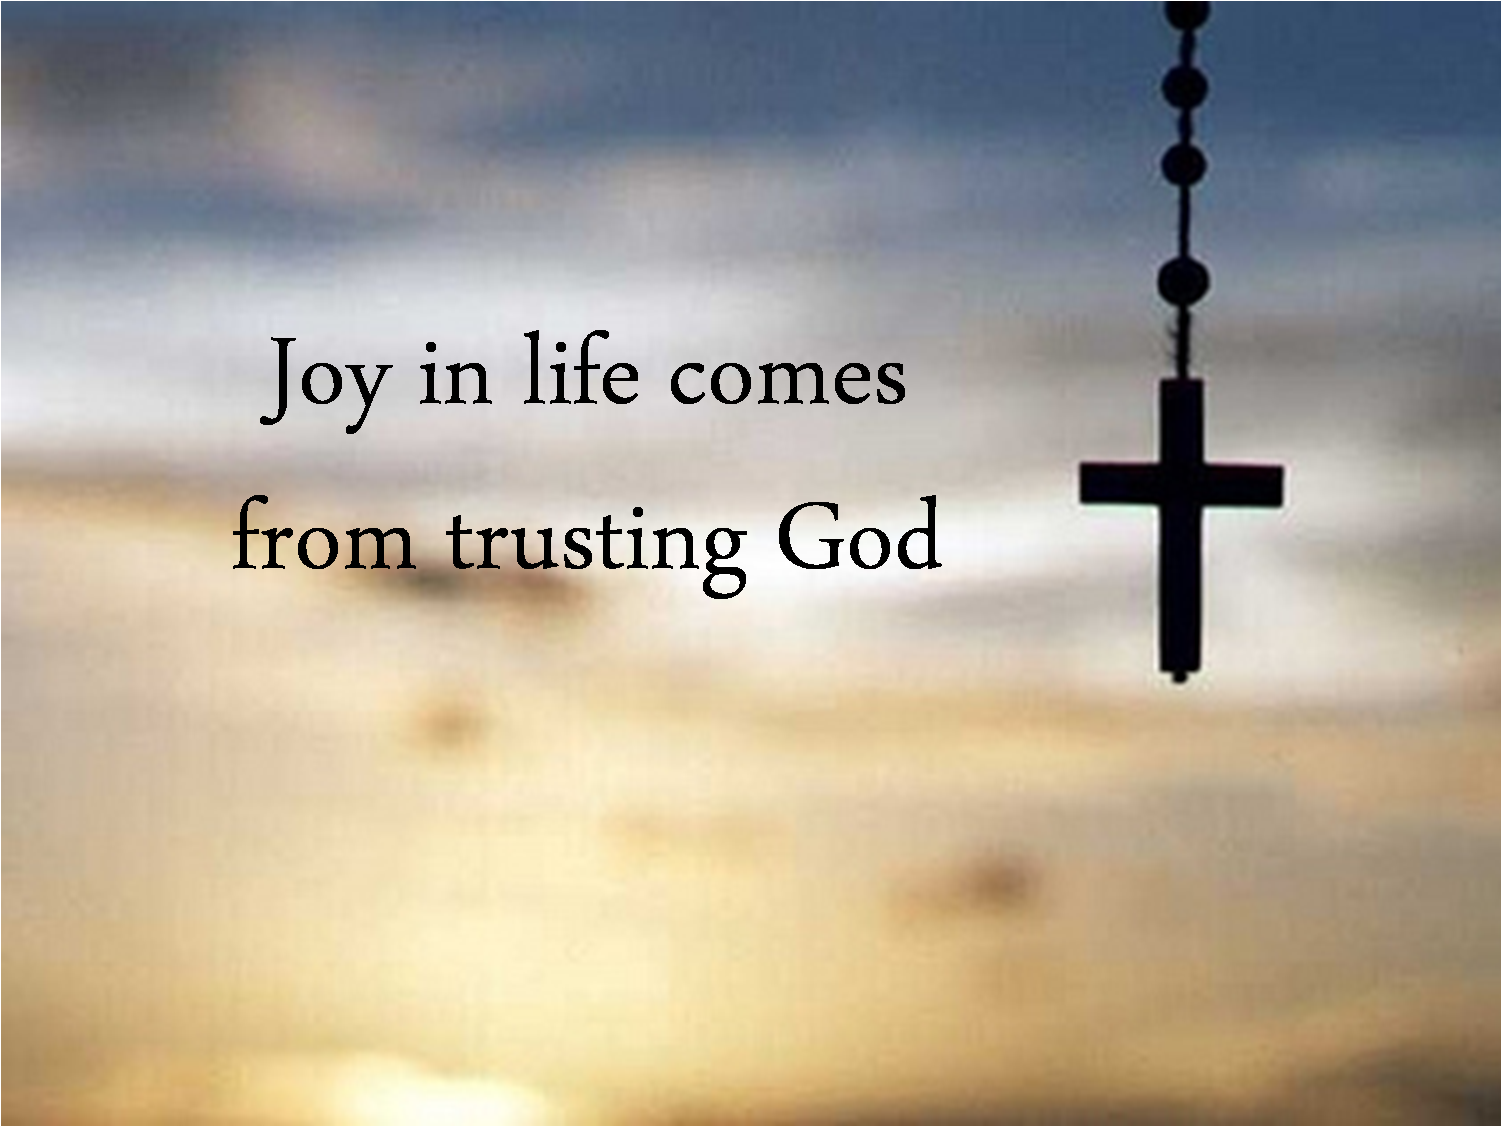 Joy in Life Comes From Trusting God